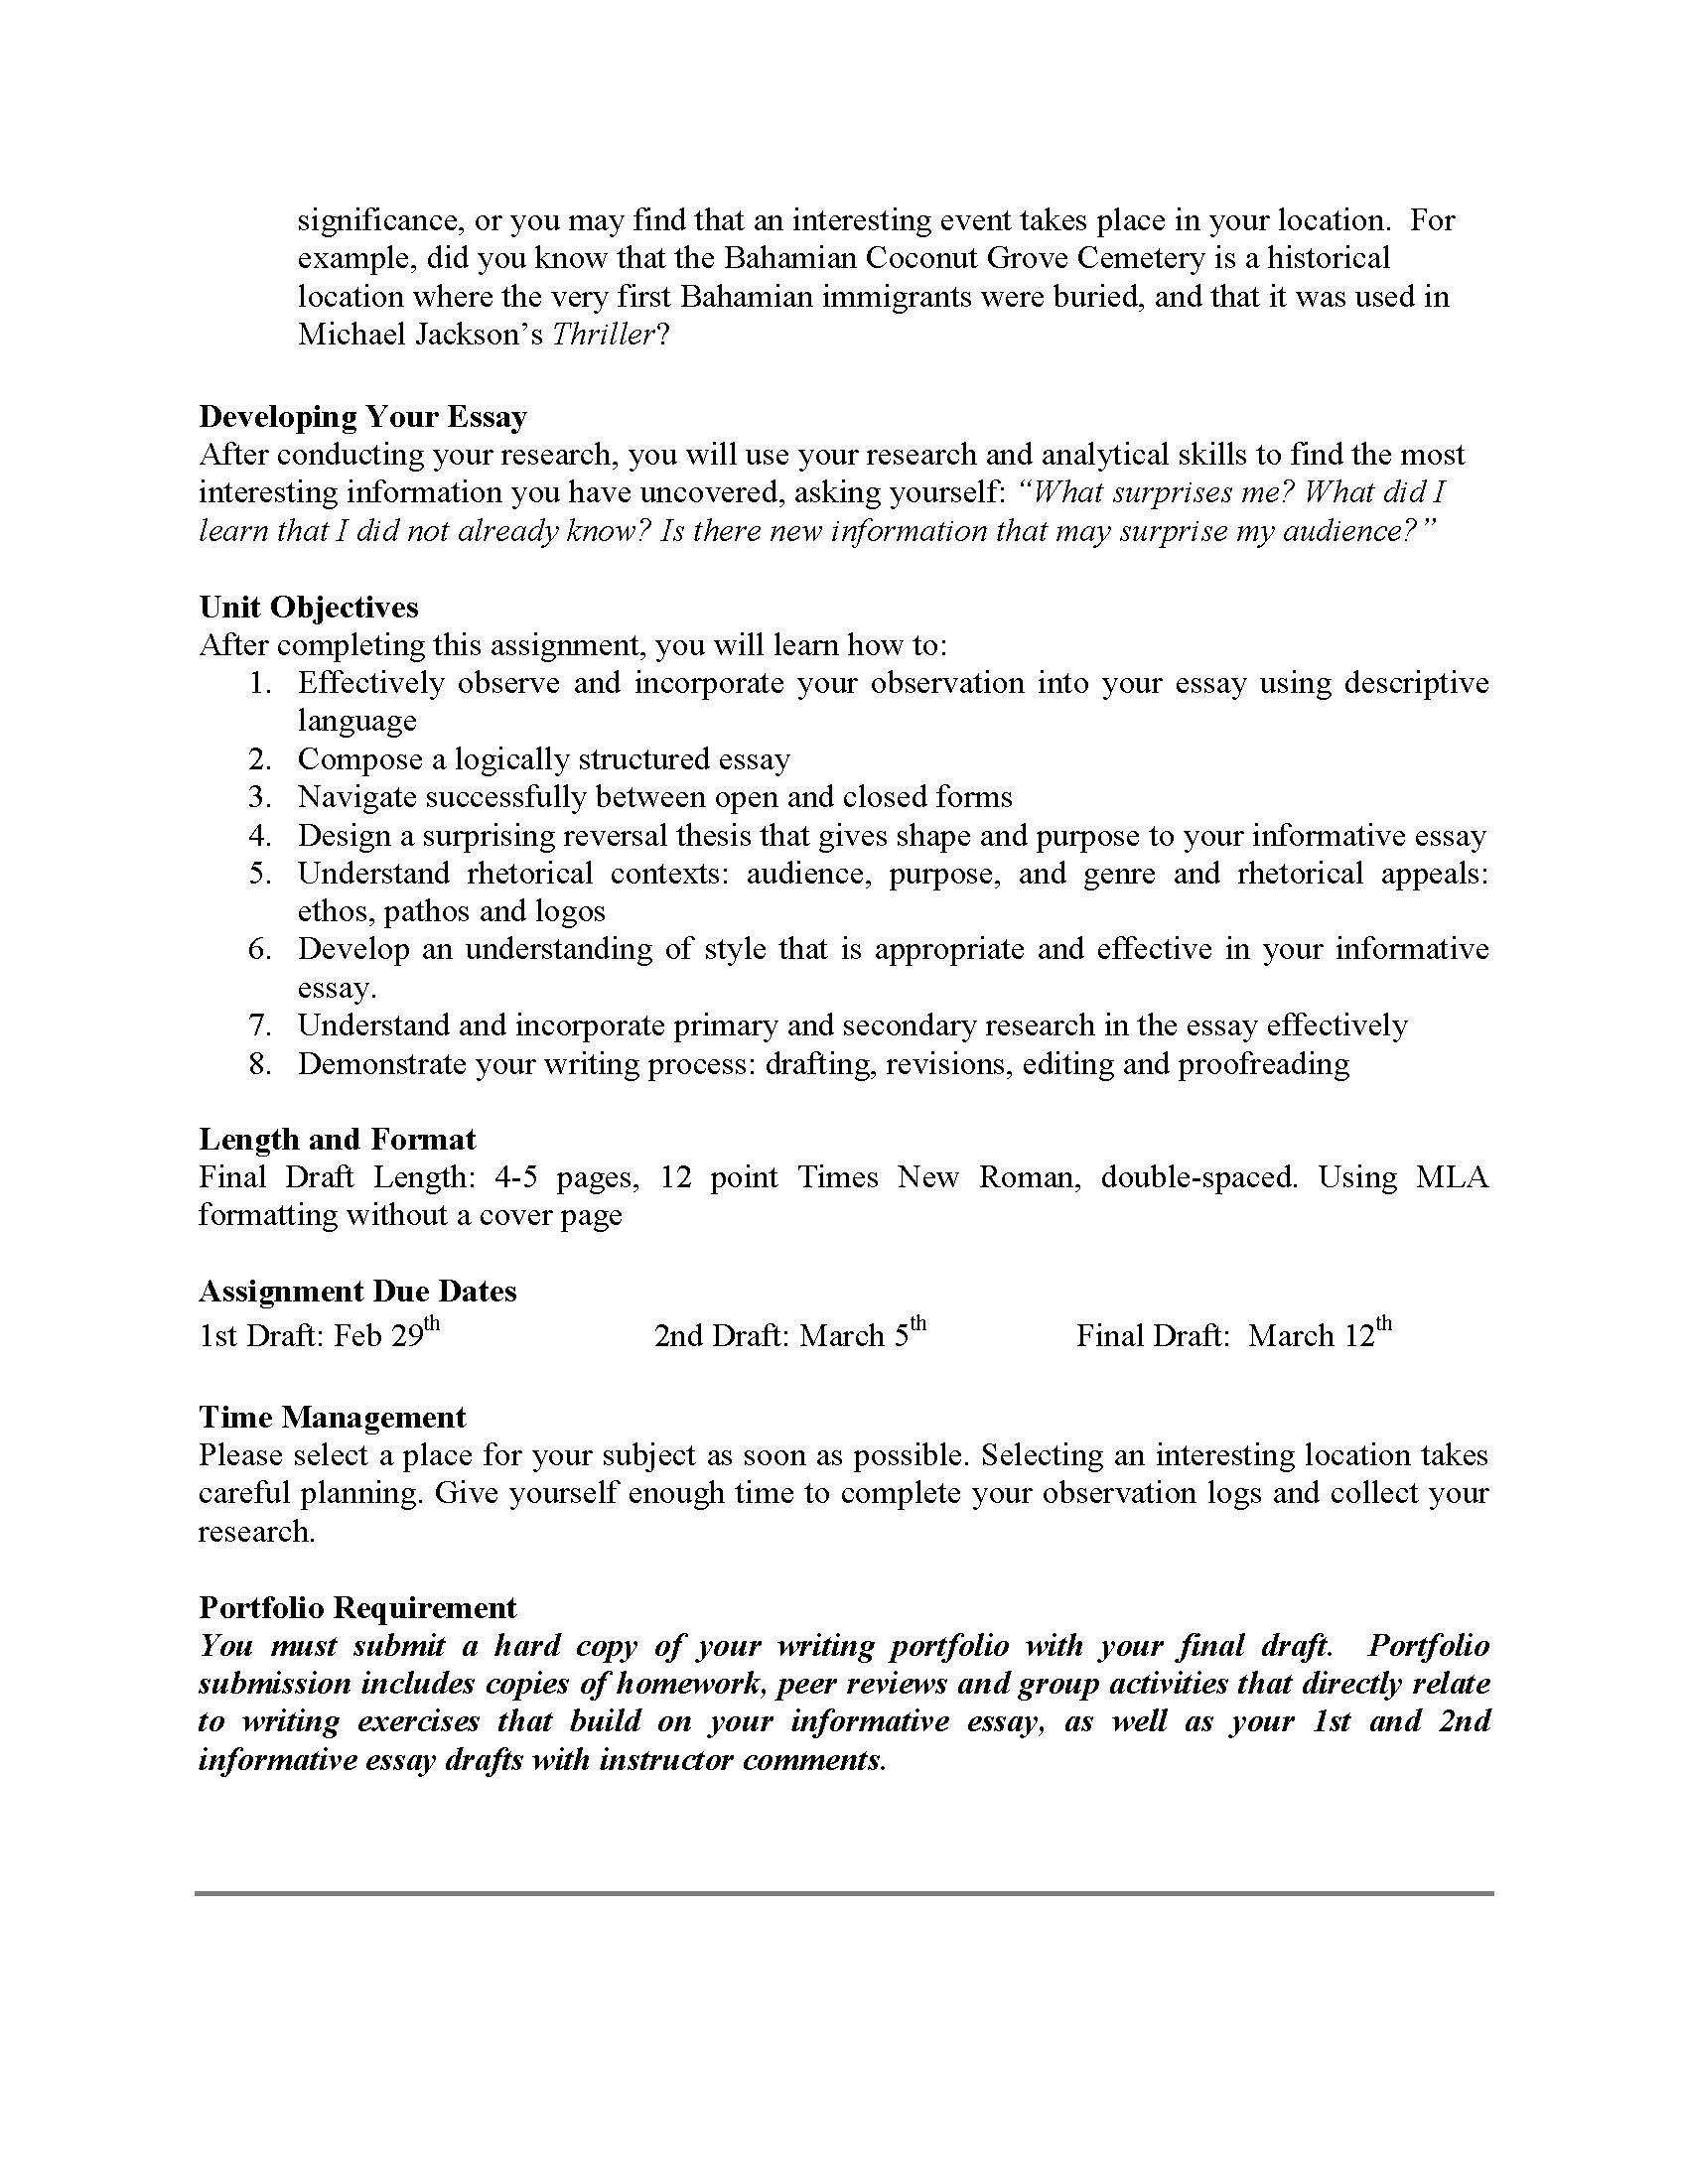 014 Informative Essay Unit Assignment Page 2 Dreaded Prompts High School Topics 2018 Middle Full